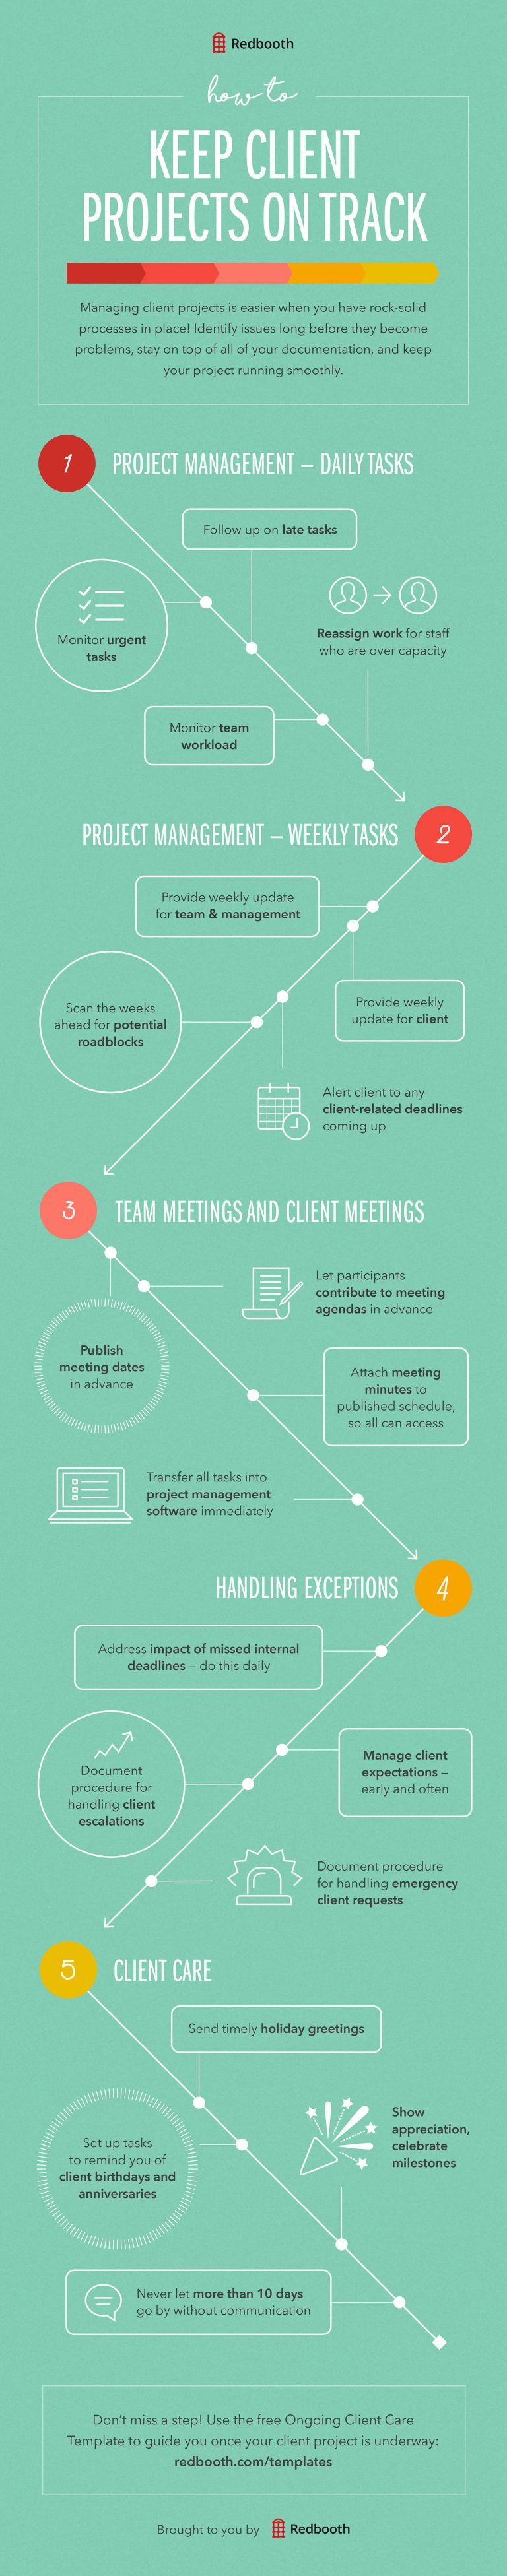 How to Keep Client Projects on Track #infographic